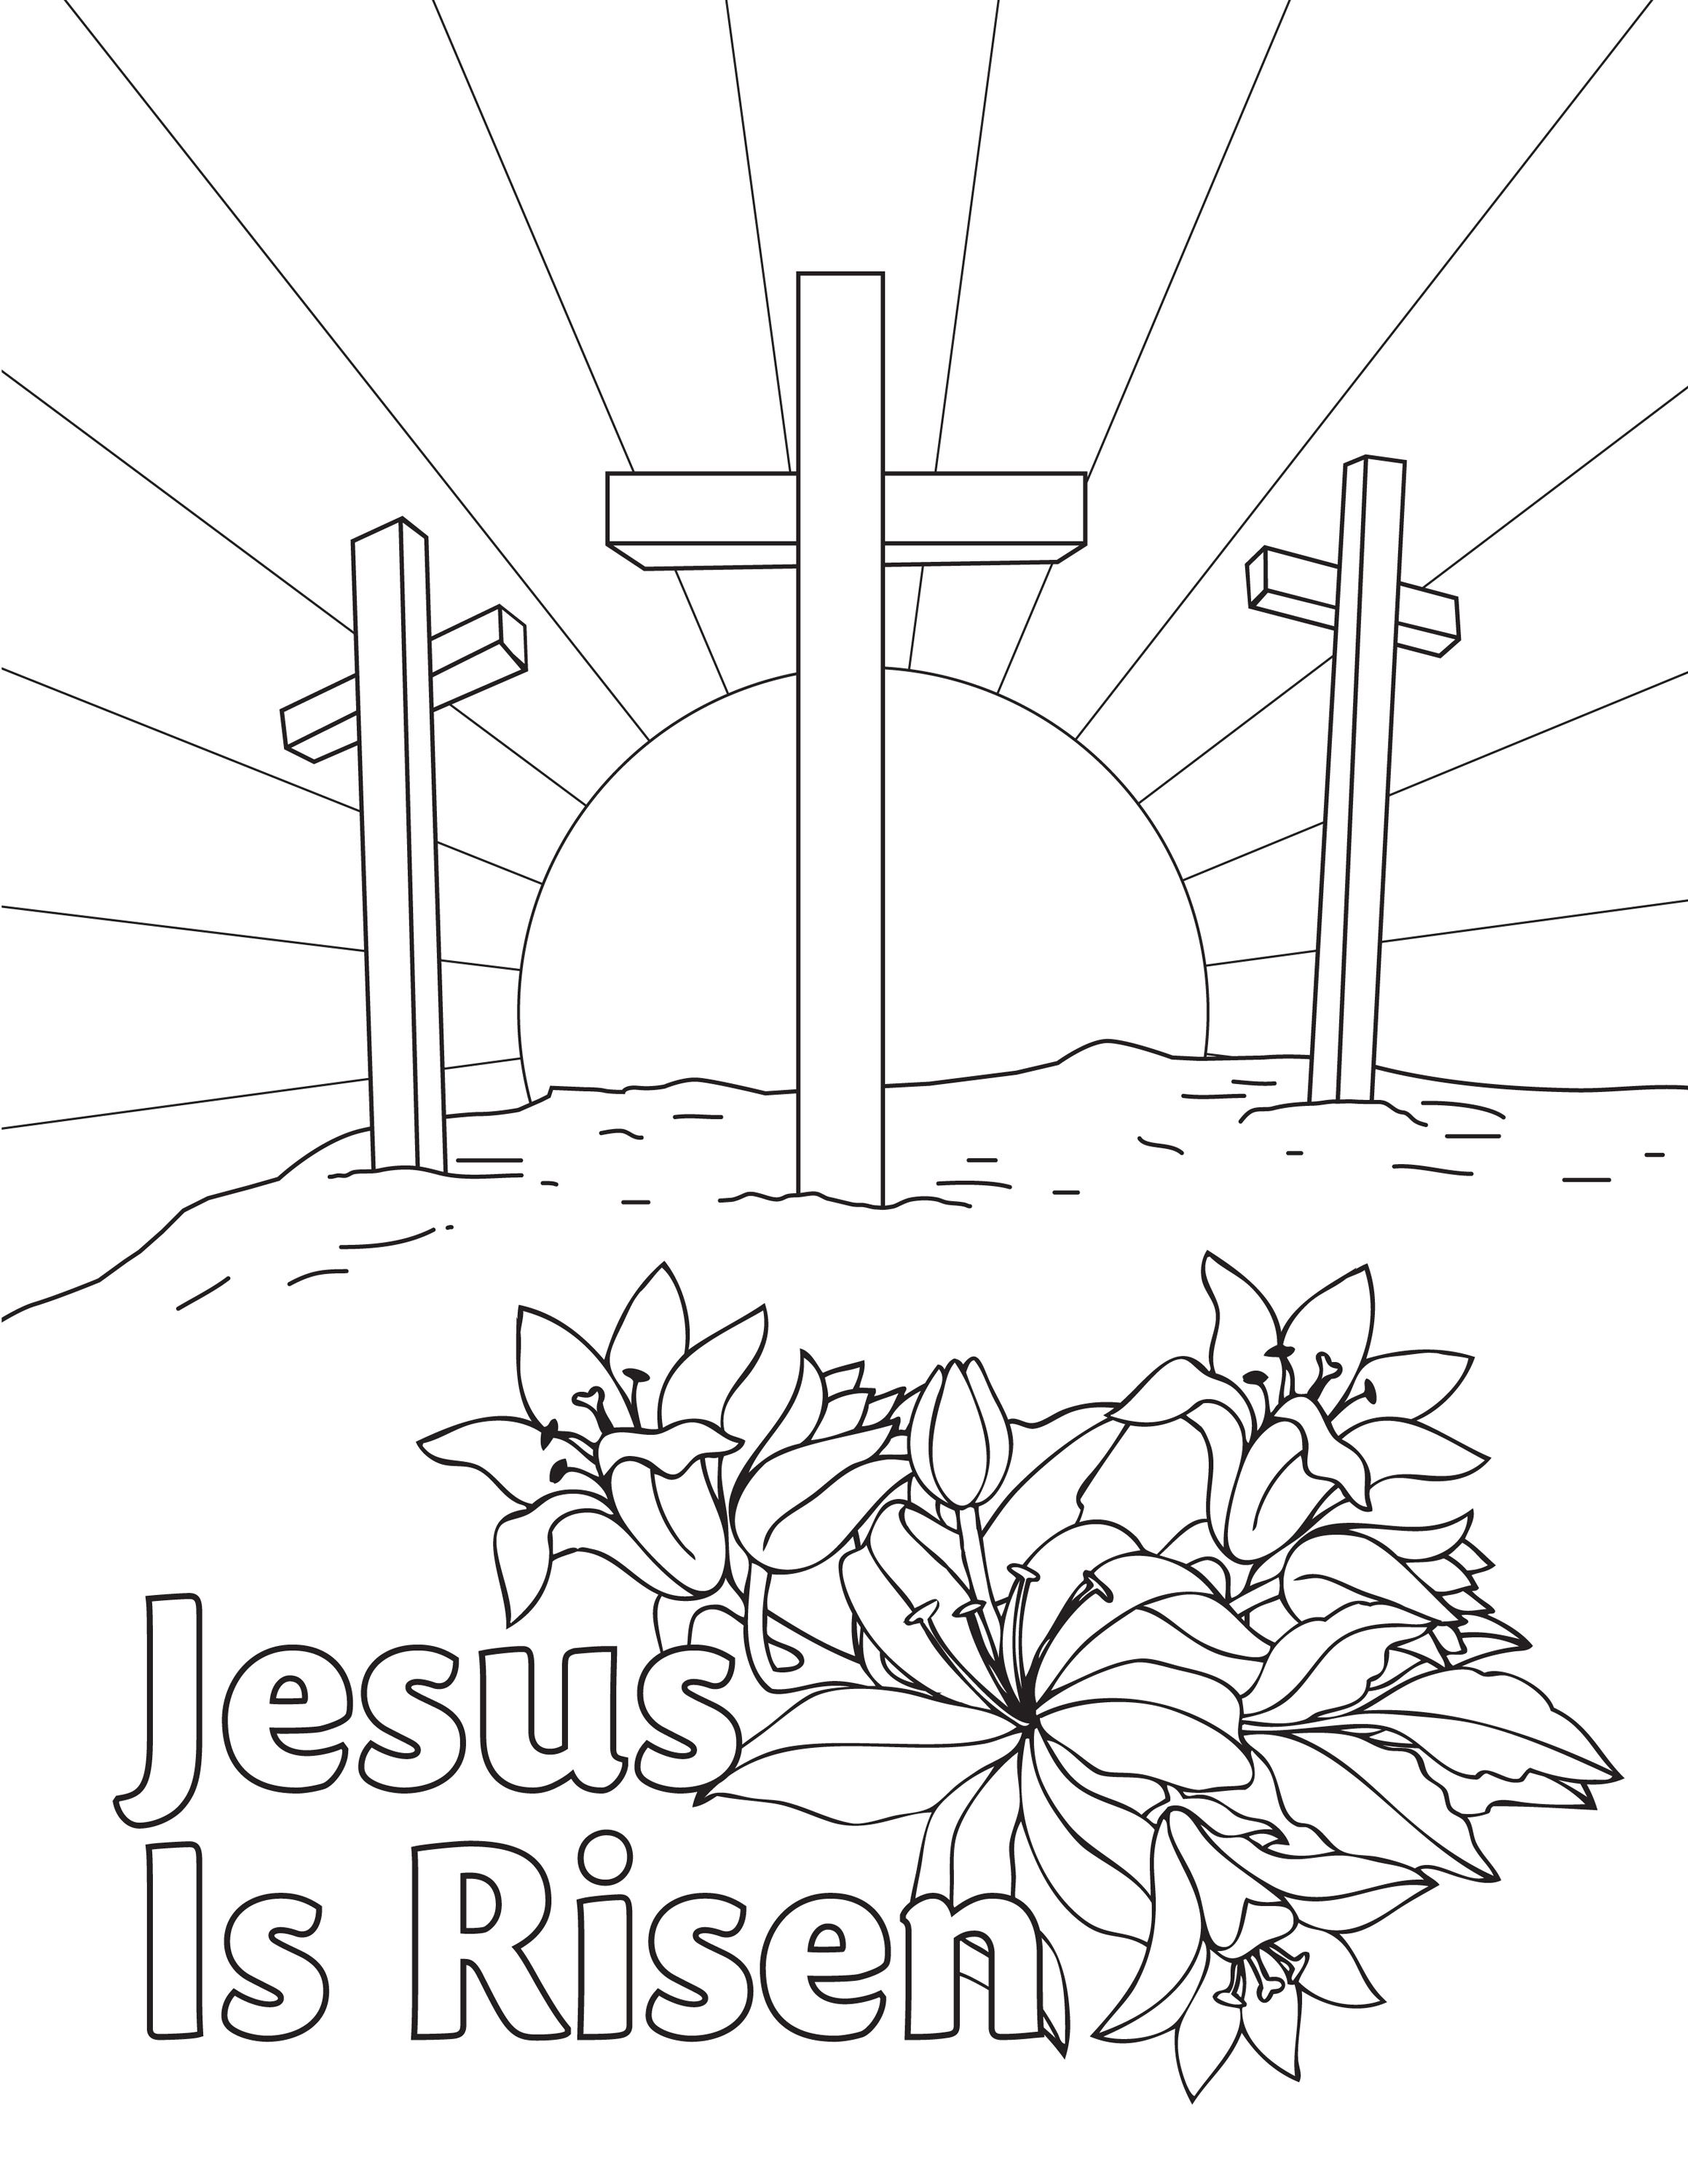 Free Easter Coloring Page Downloadable Printable From Aop